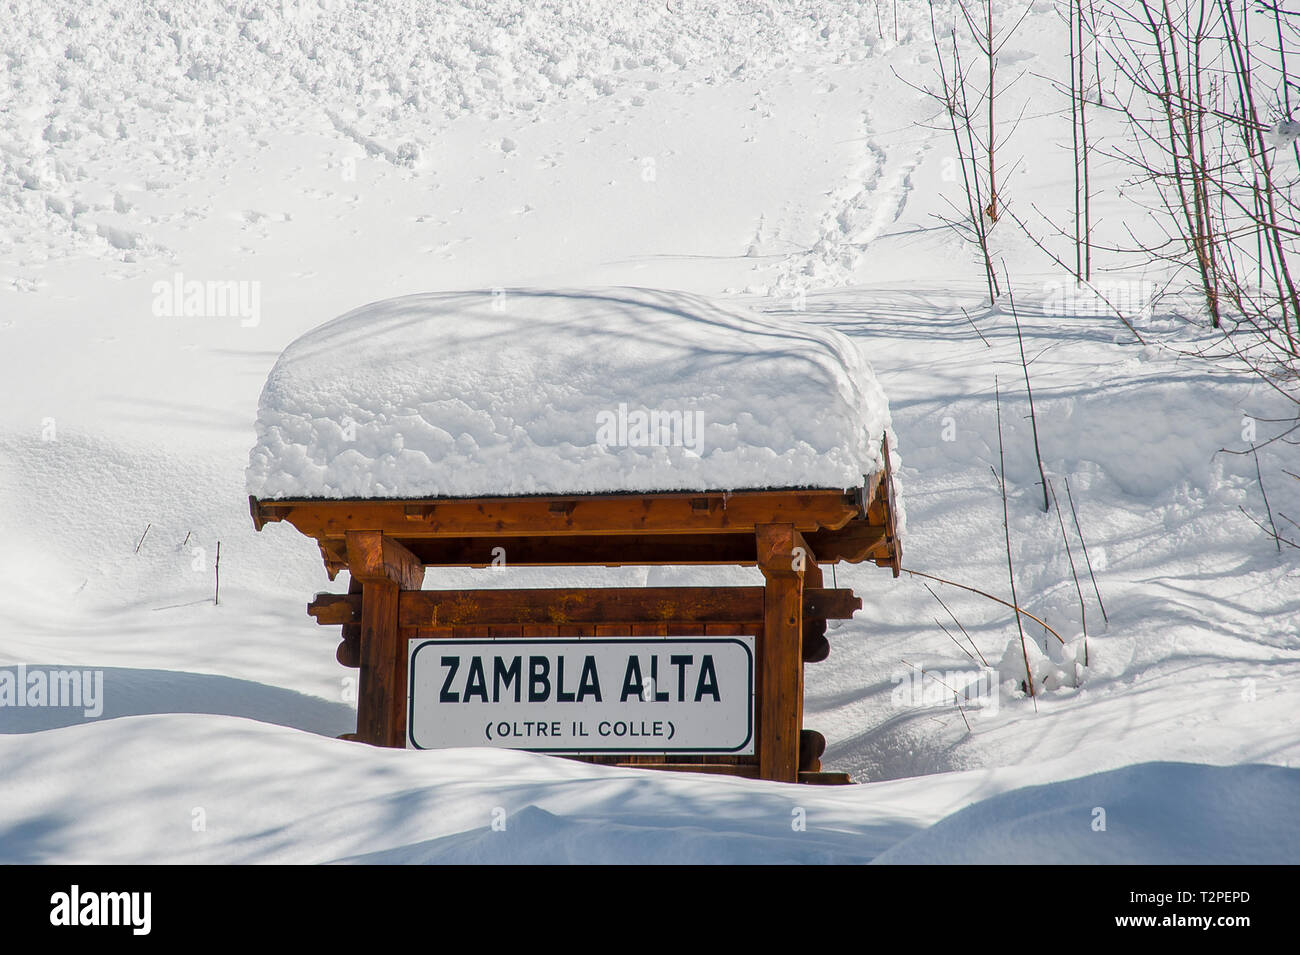 road sign covered by heavy snowfall - Stock Image